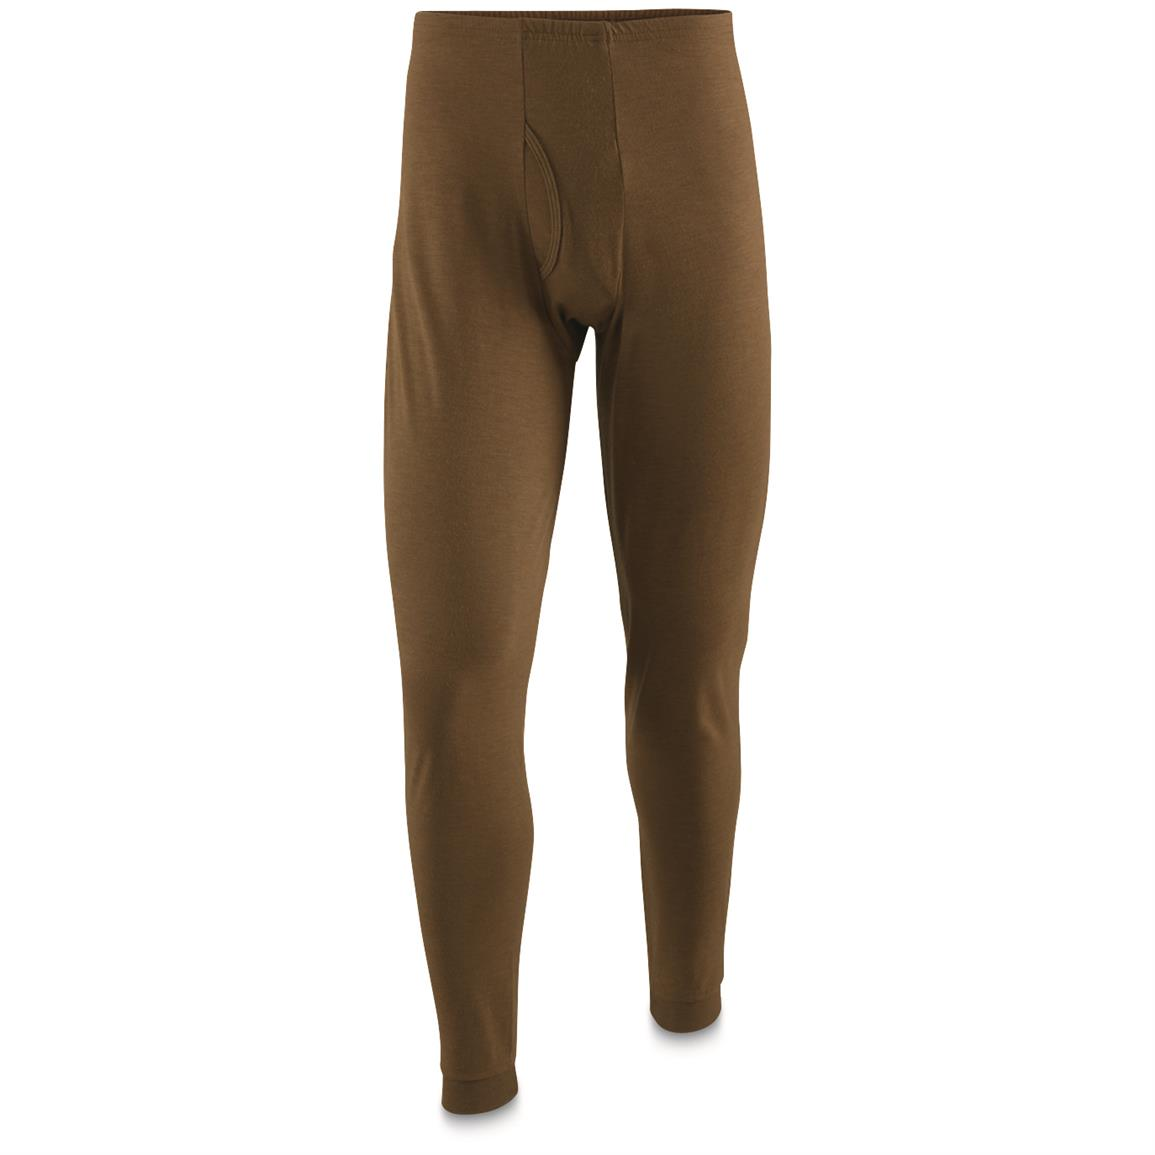 U.S. Military Surplus Potomac Flame-Resistant Field Gear Base Layer Long Johns, New, Brown